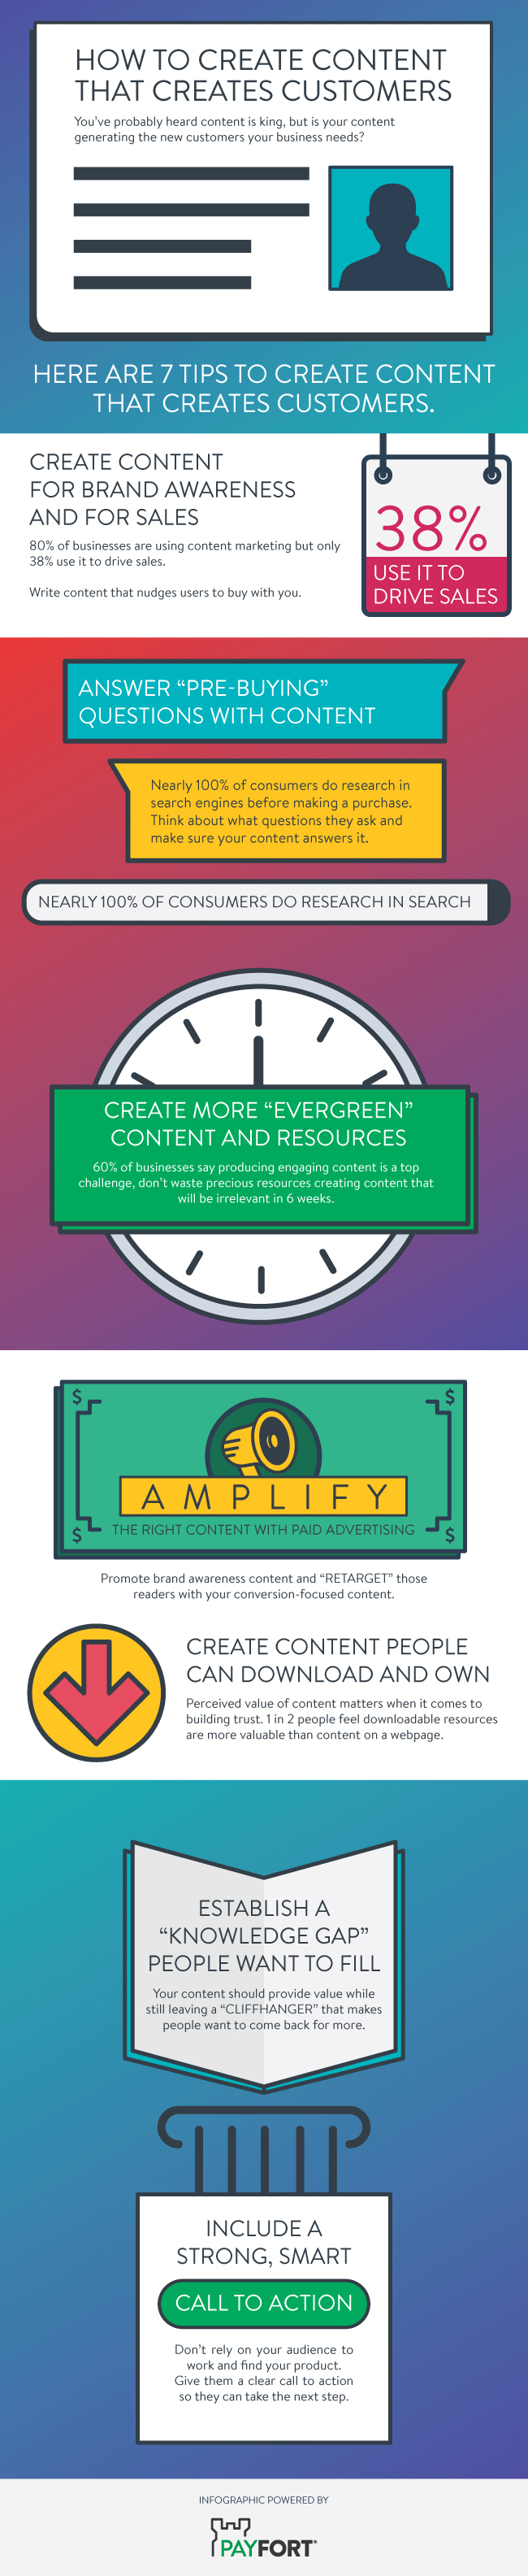 infographic provides tips on how to create lead generating content